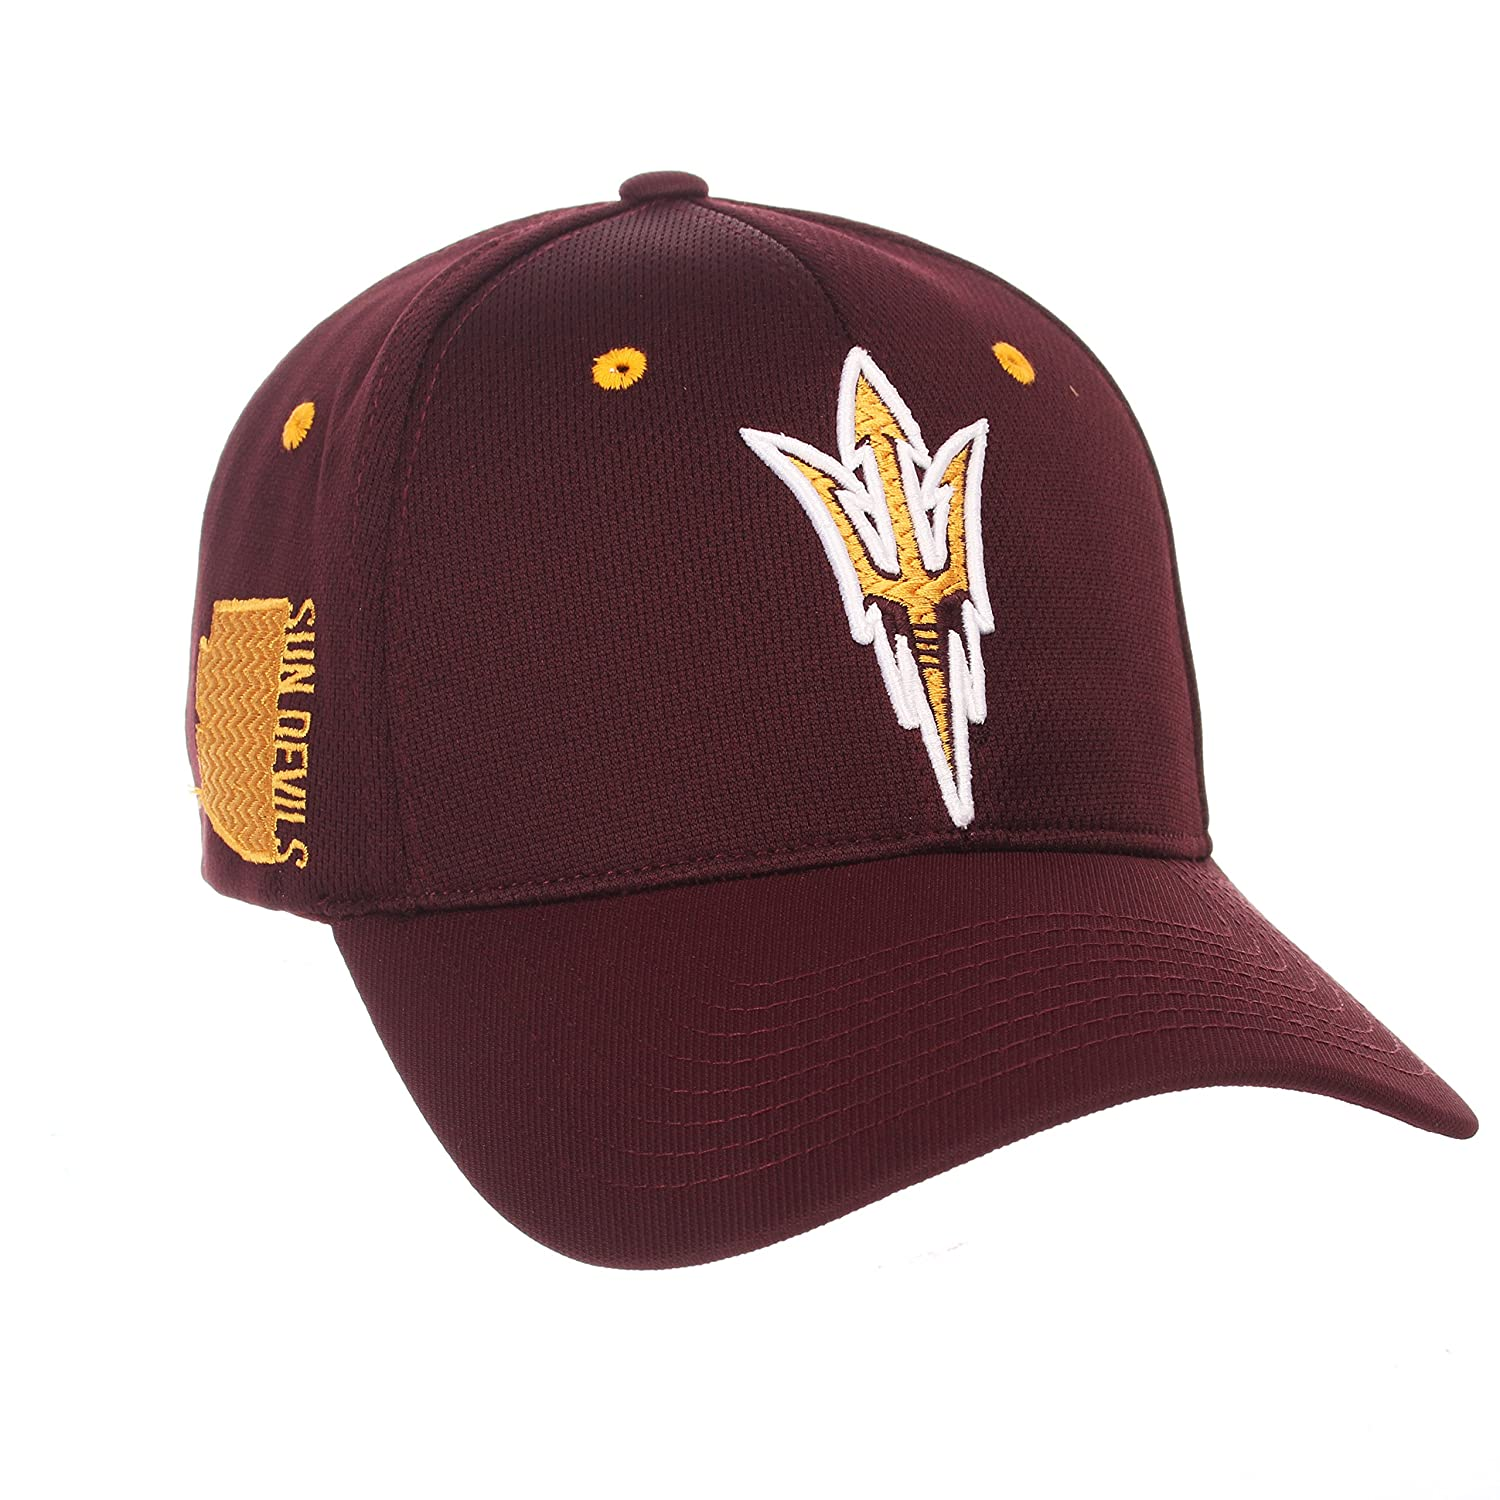 Medium//Large Team Color Zephyr Adult Men Rambler NCAA Hat